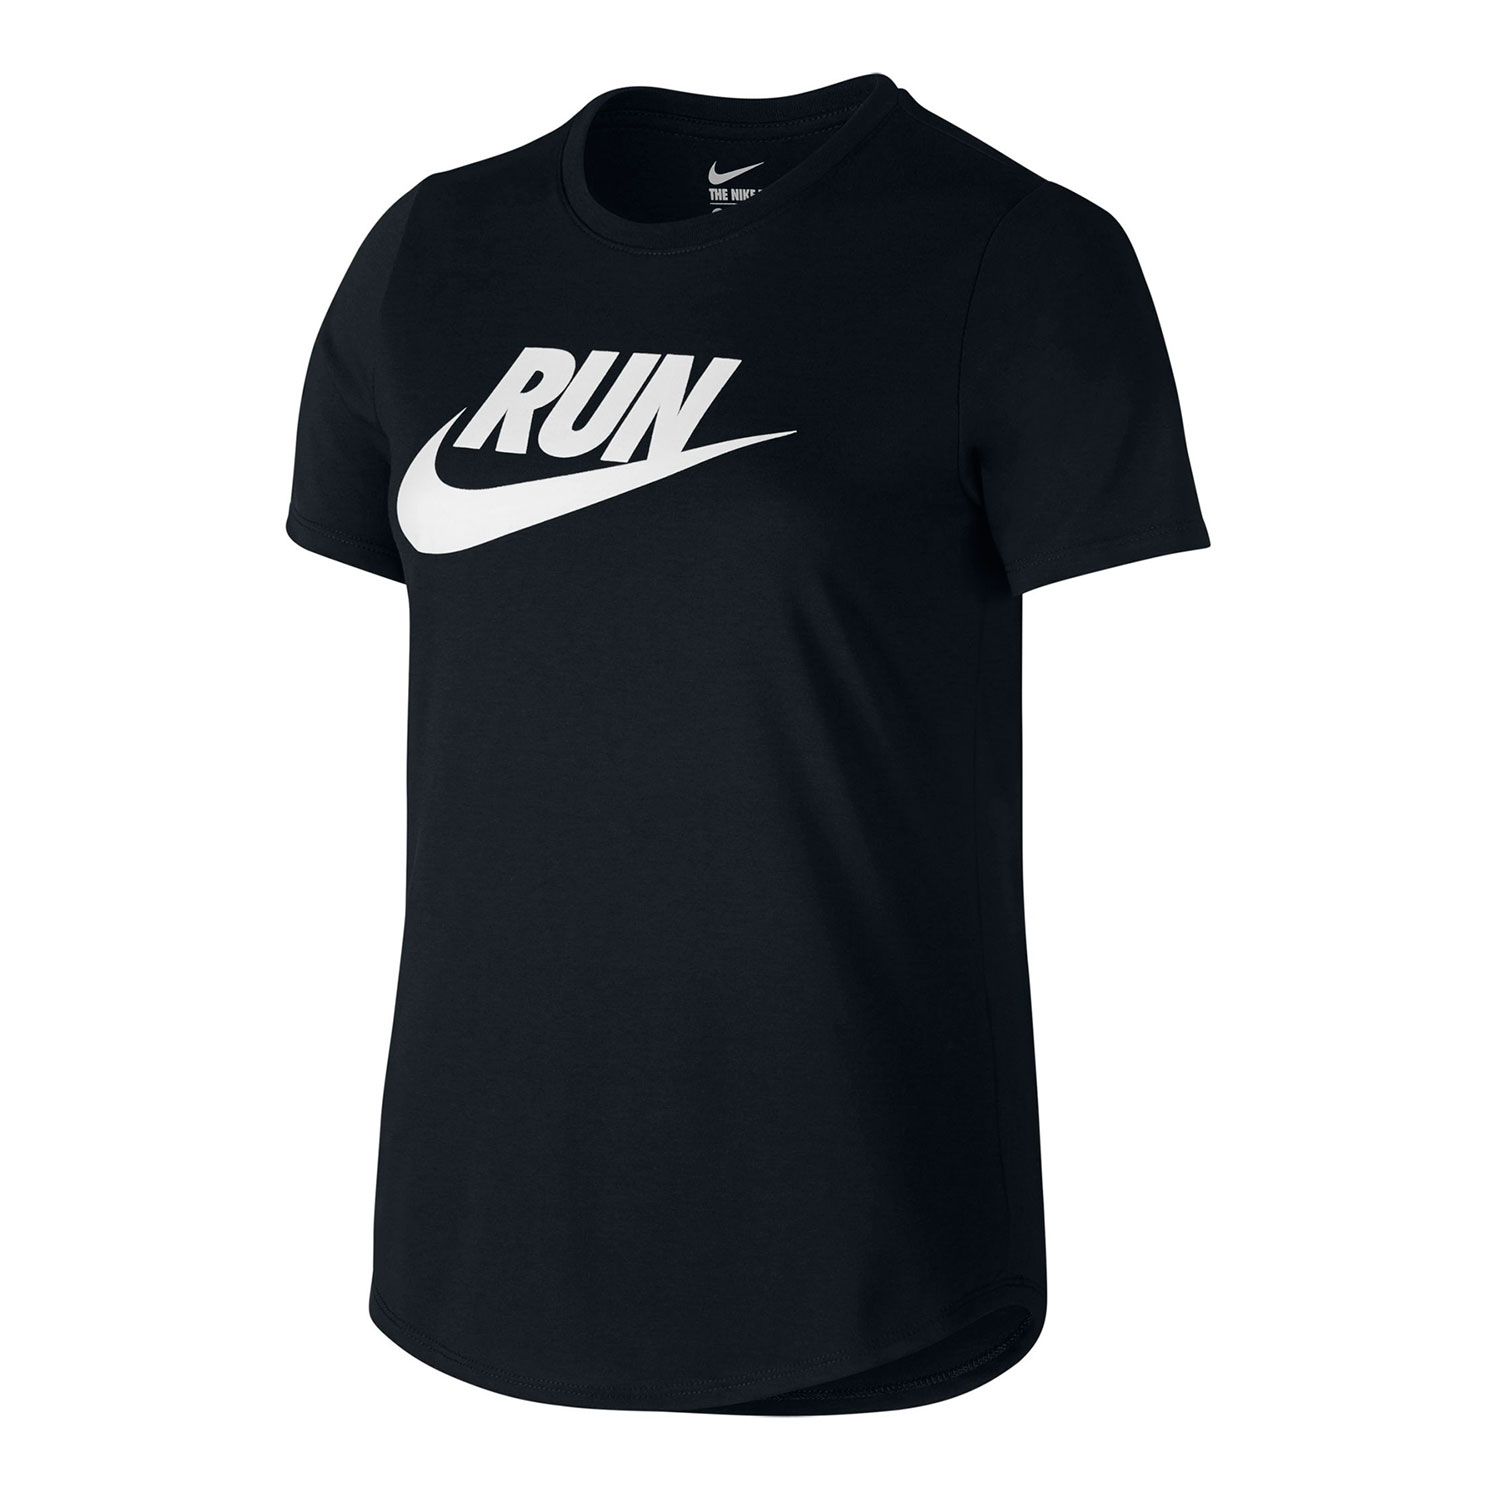 nike womens run t shirt. Black Bedroom Furniture Sets. Home Design Ideas